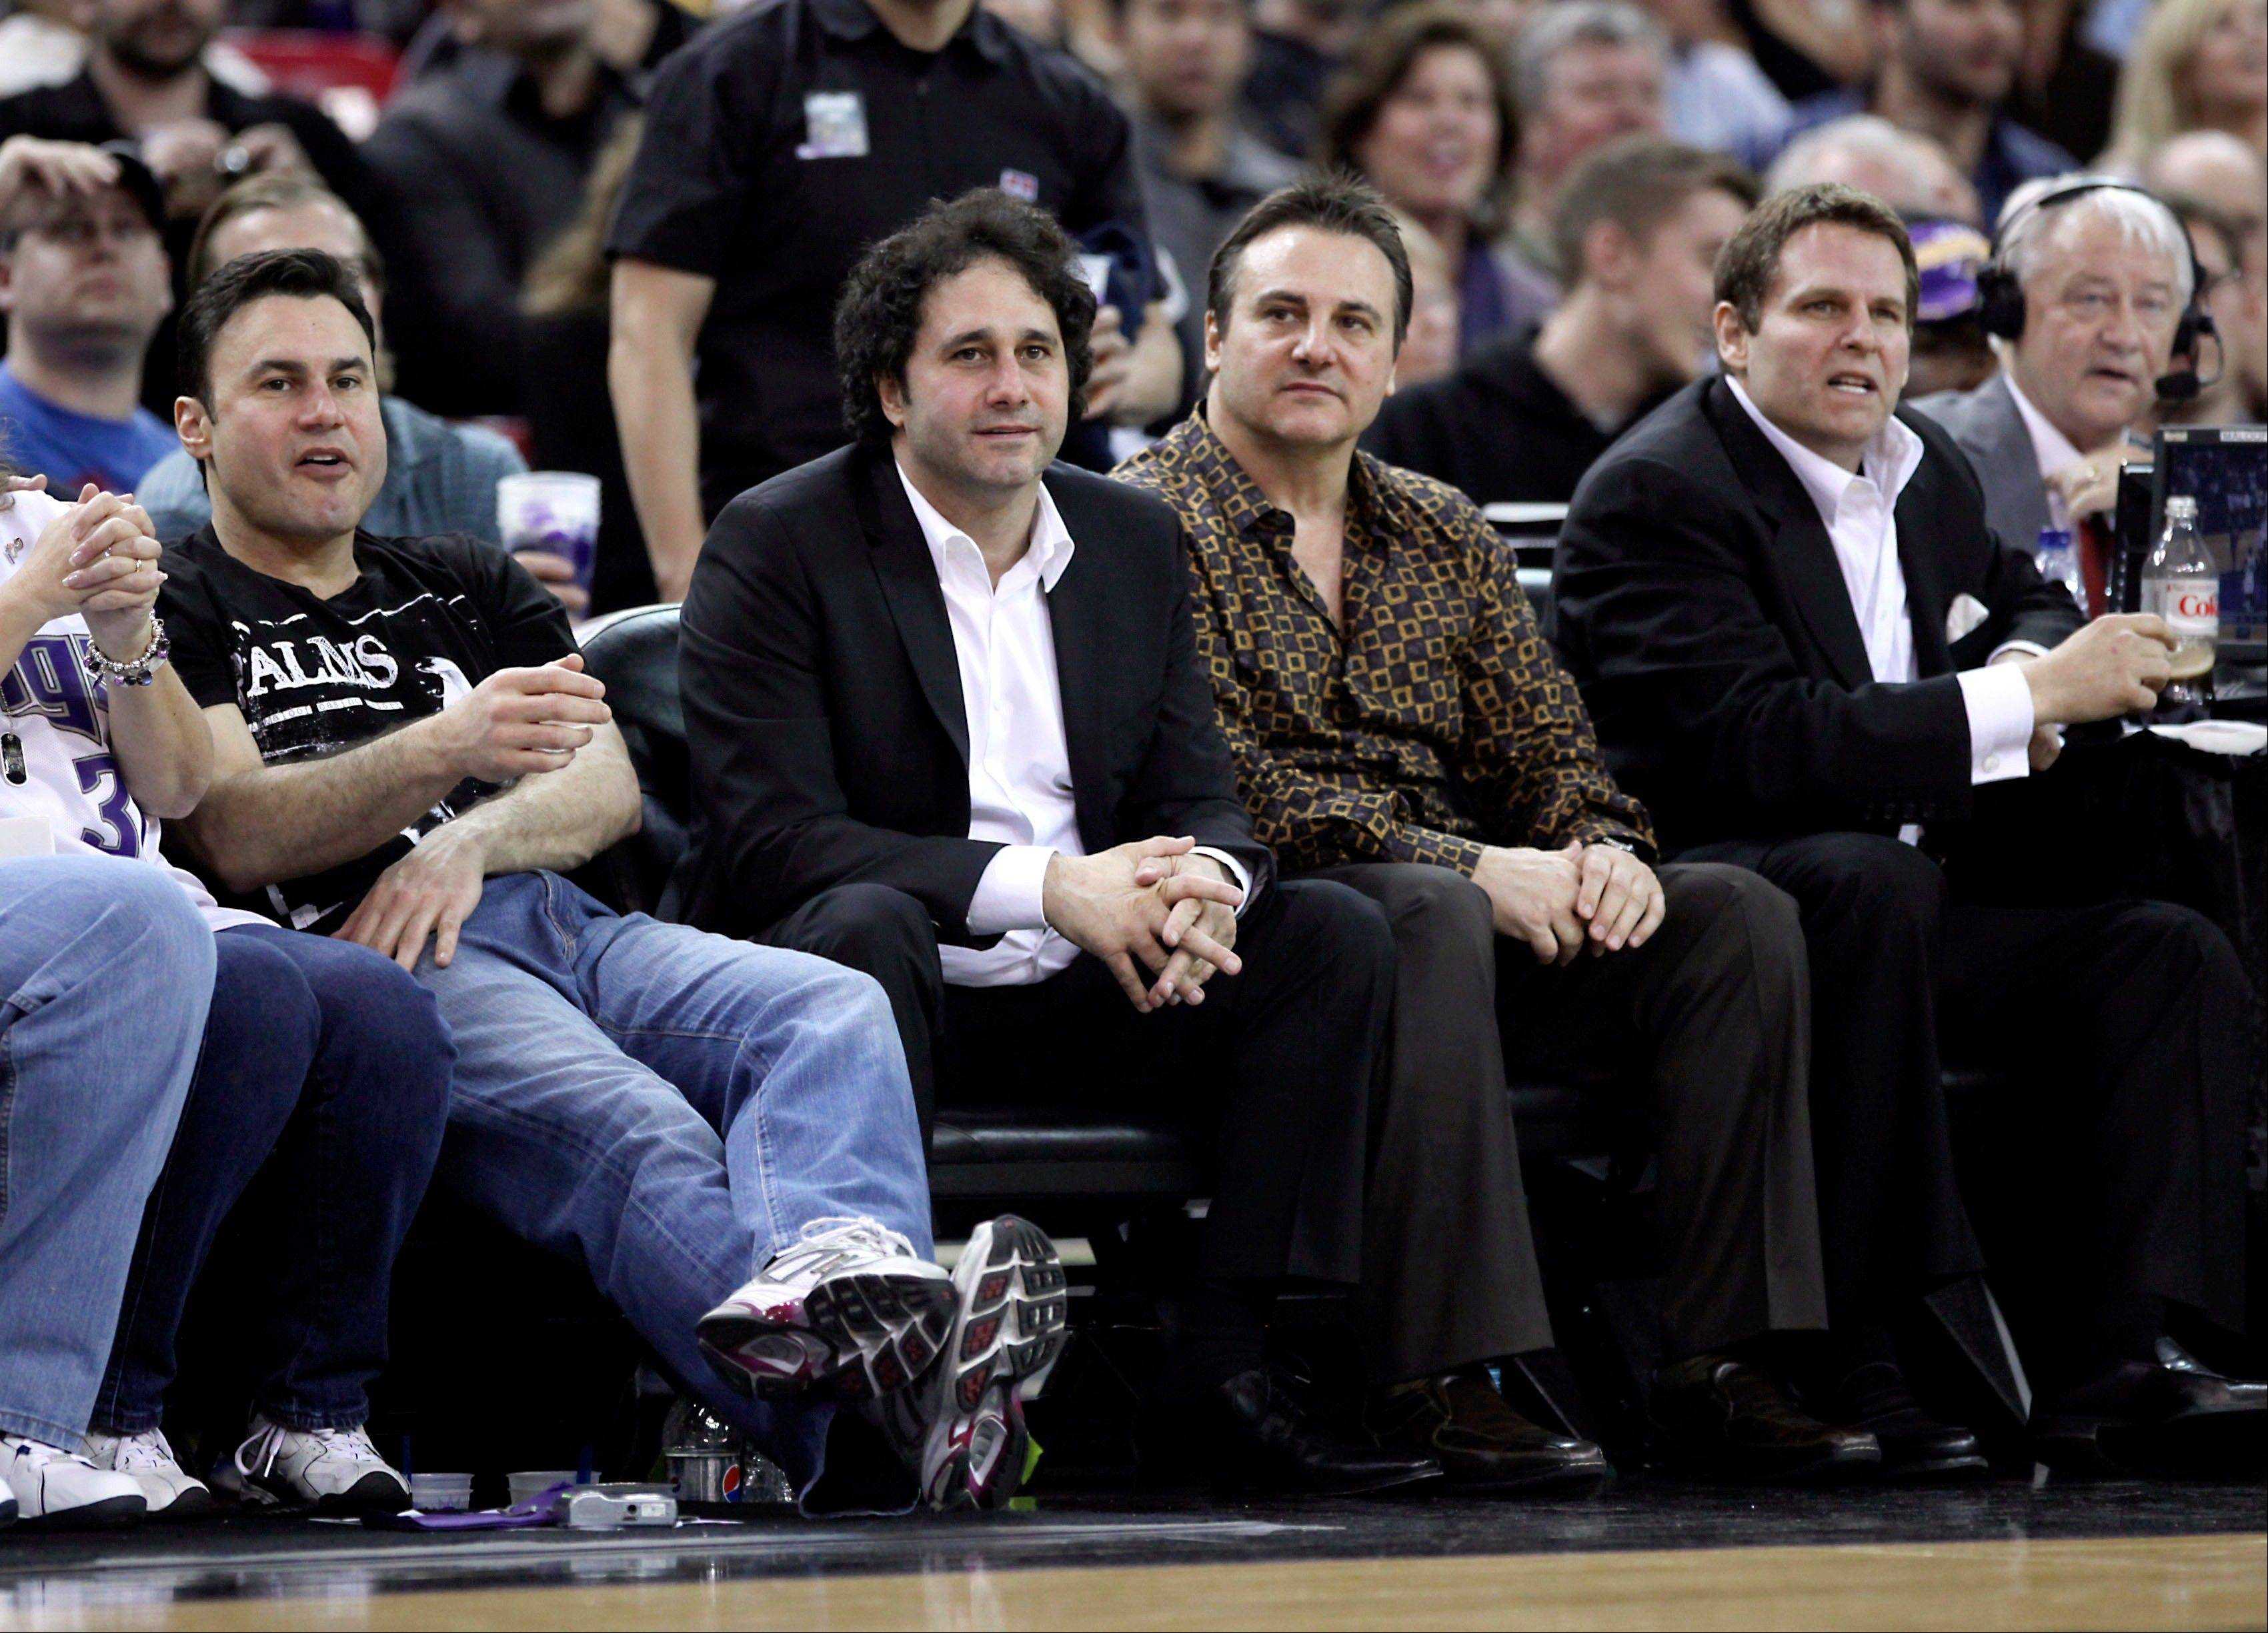 In this Dec. 26, 2009, photo, from left, brothers Phil, George, Gavin and Joe Maloof, owners of the Sacramento Kings, watch an NBA basketball game against the Los Angeles Lakers in Sacramento, Calif. People with knowledge of the situation said Wednesday, Jan. 9, 2013, that investor Chris Hansen has contacted the Maloof family about buying the Kings.